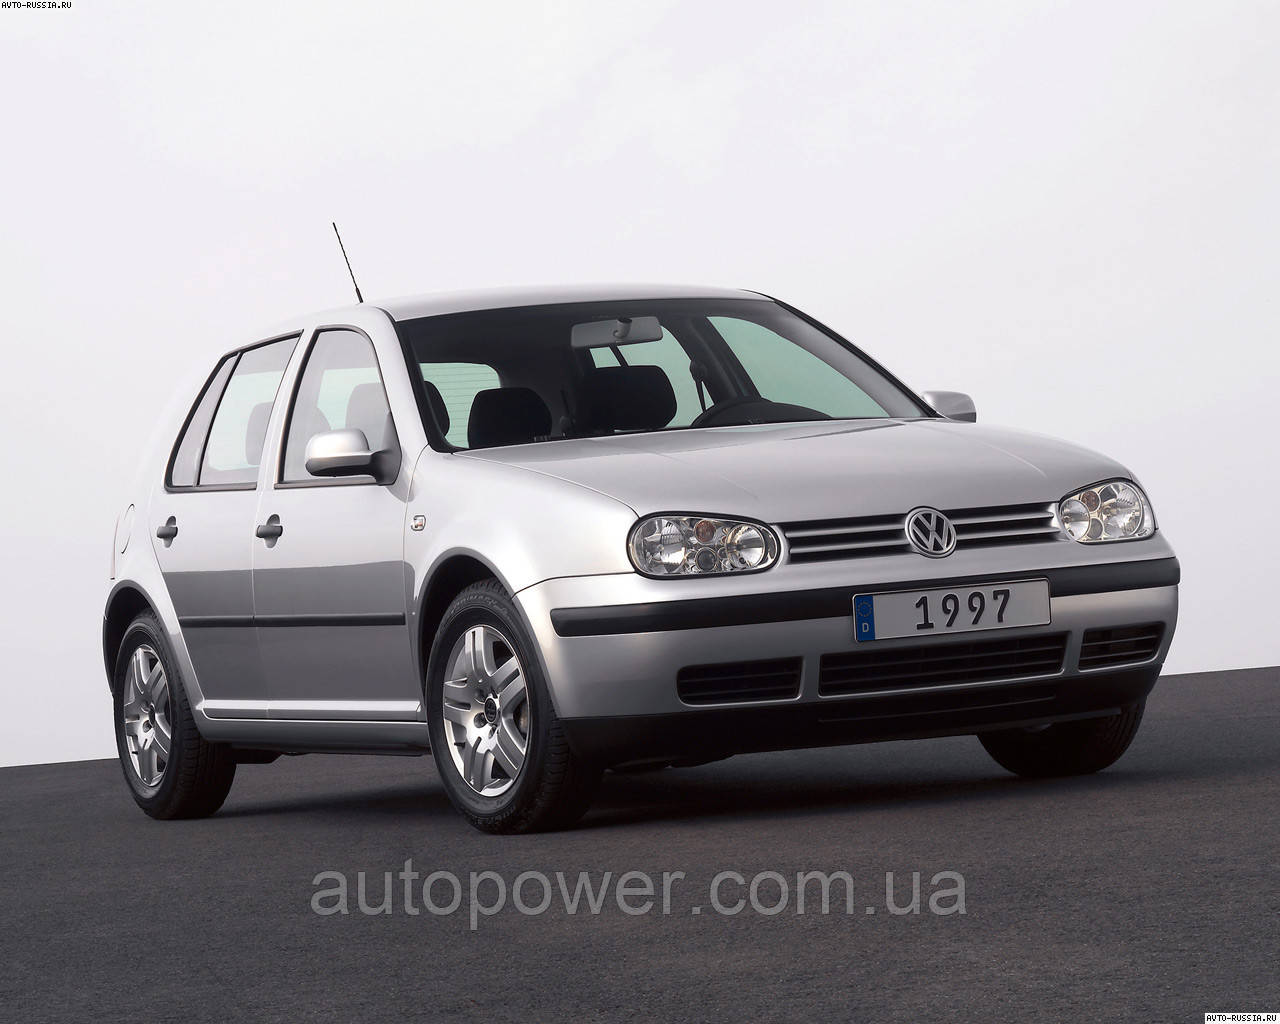 Фаркоп на Volkswagen Golf 4 хетчбек (1997-2003)